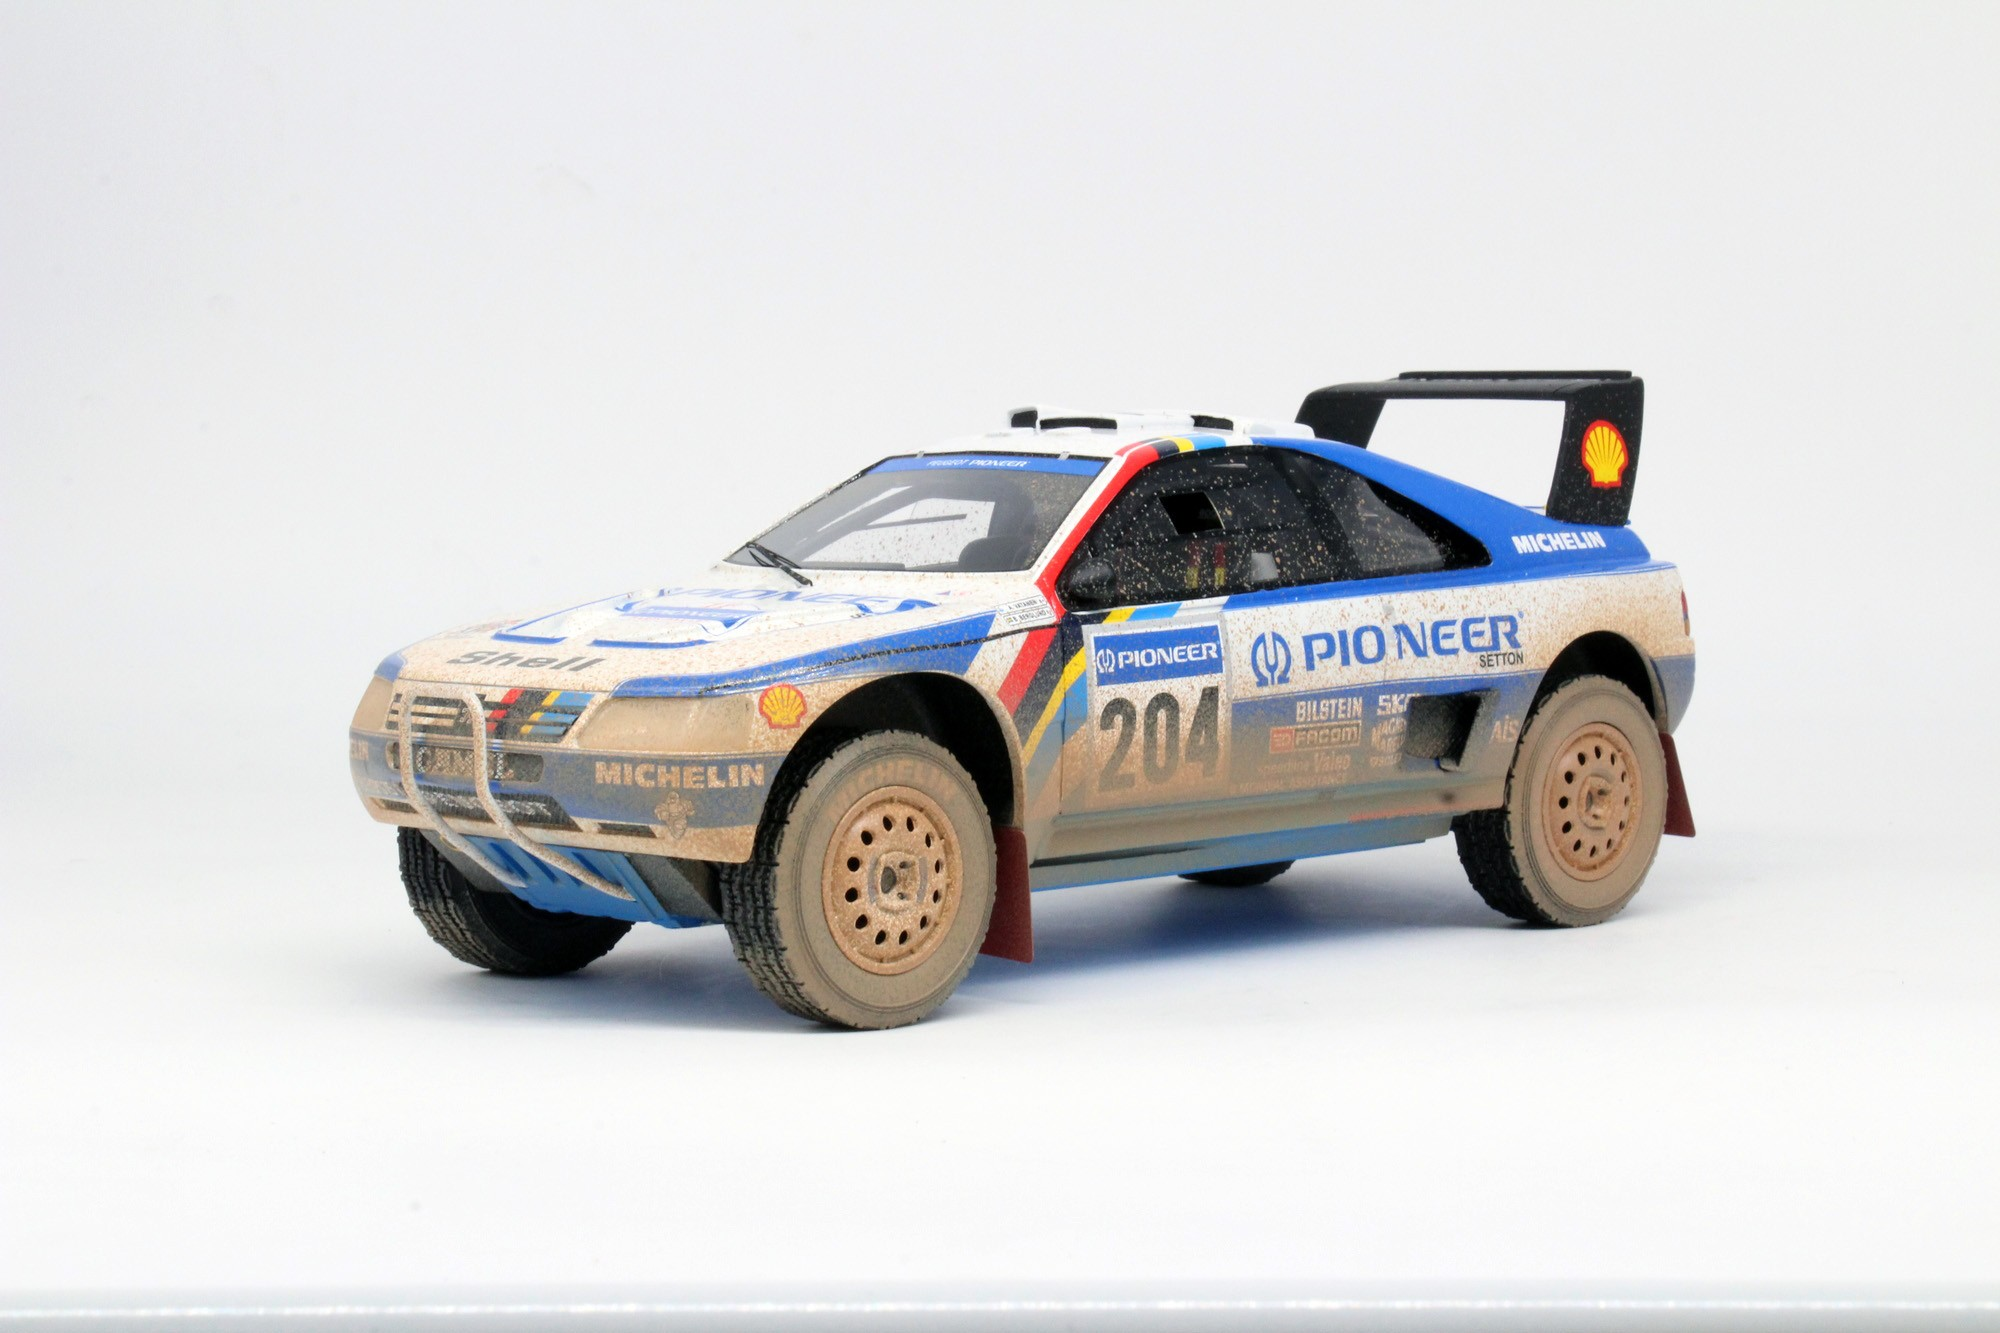 Top Marques Collectibles Peugeot 405 GT T 16 Paris Dakar Winner 1989